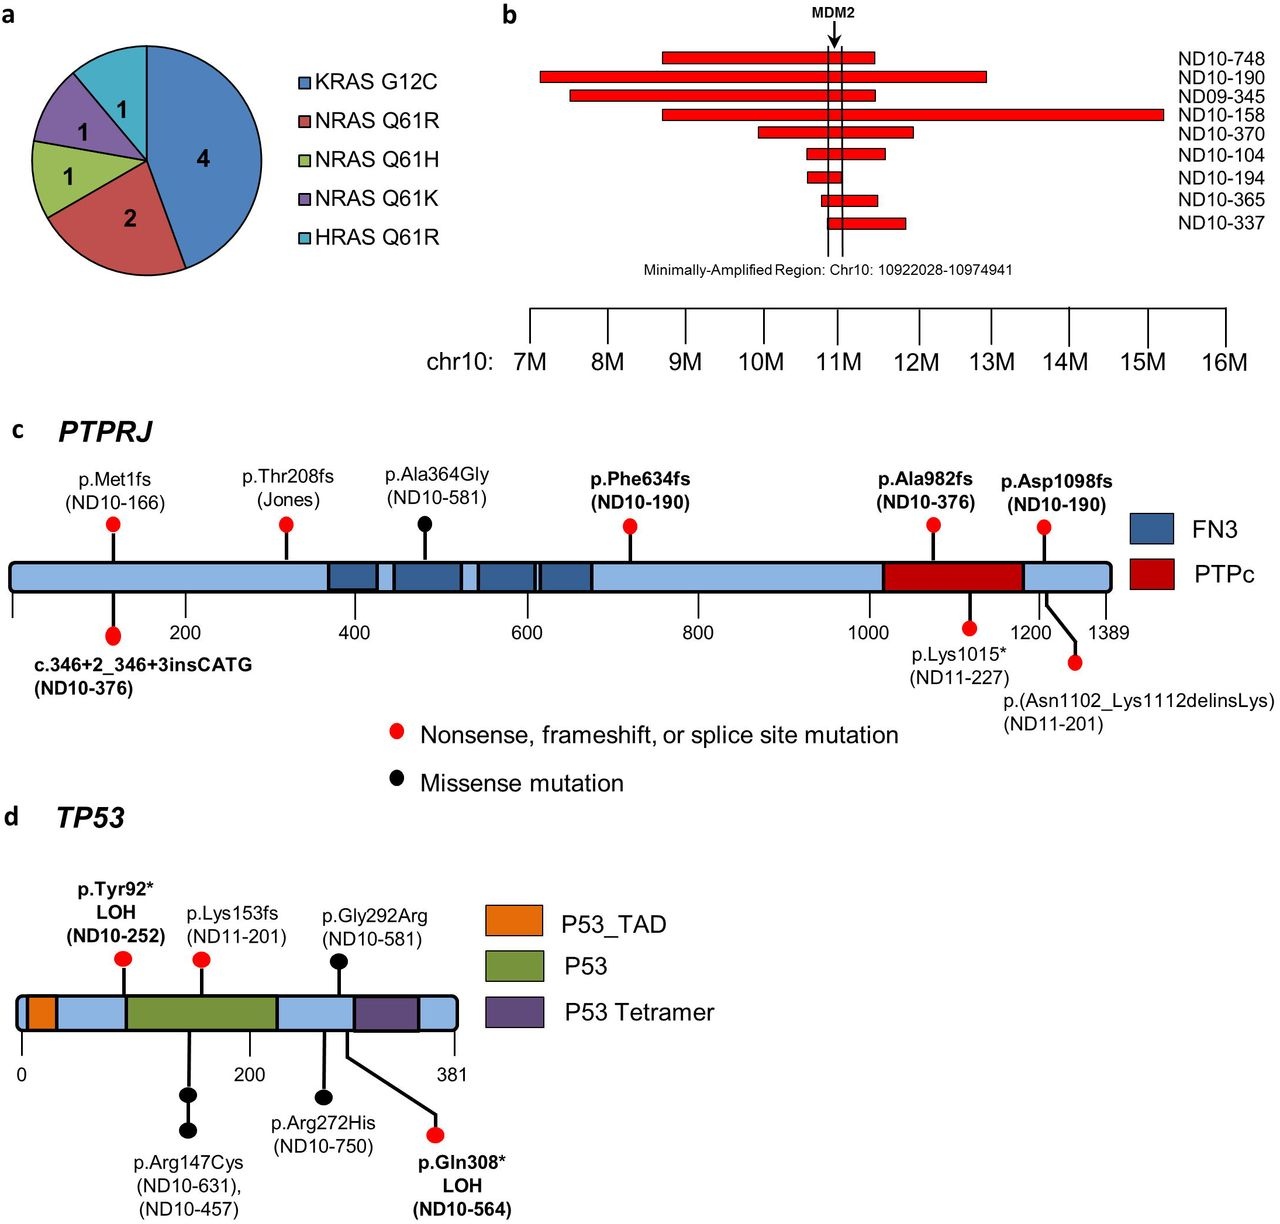 Somatic inactivating PTPRJ mutations and dysregulated pathways